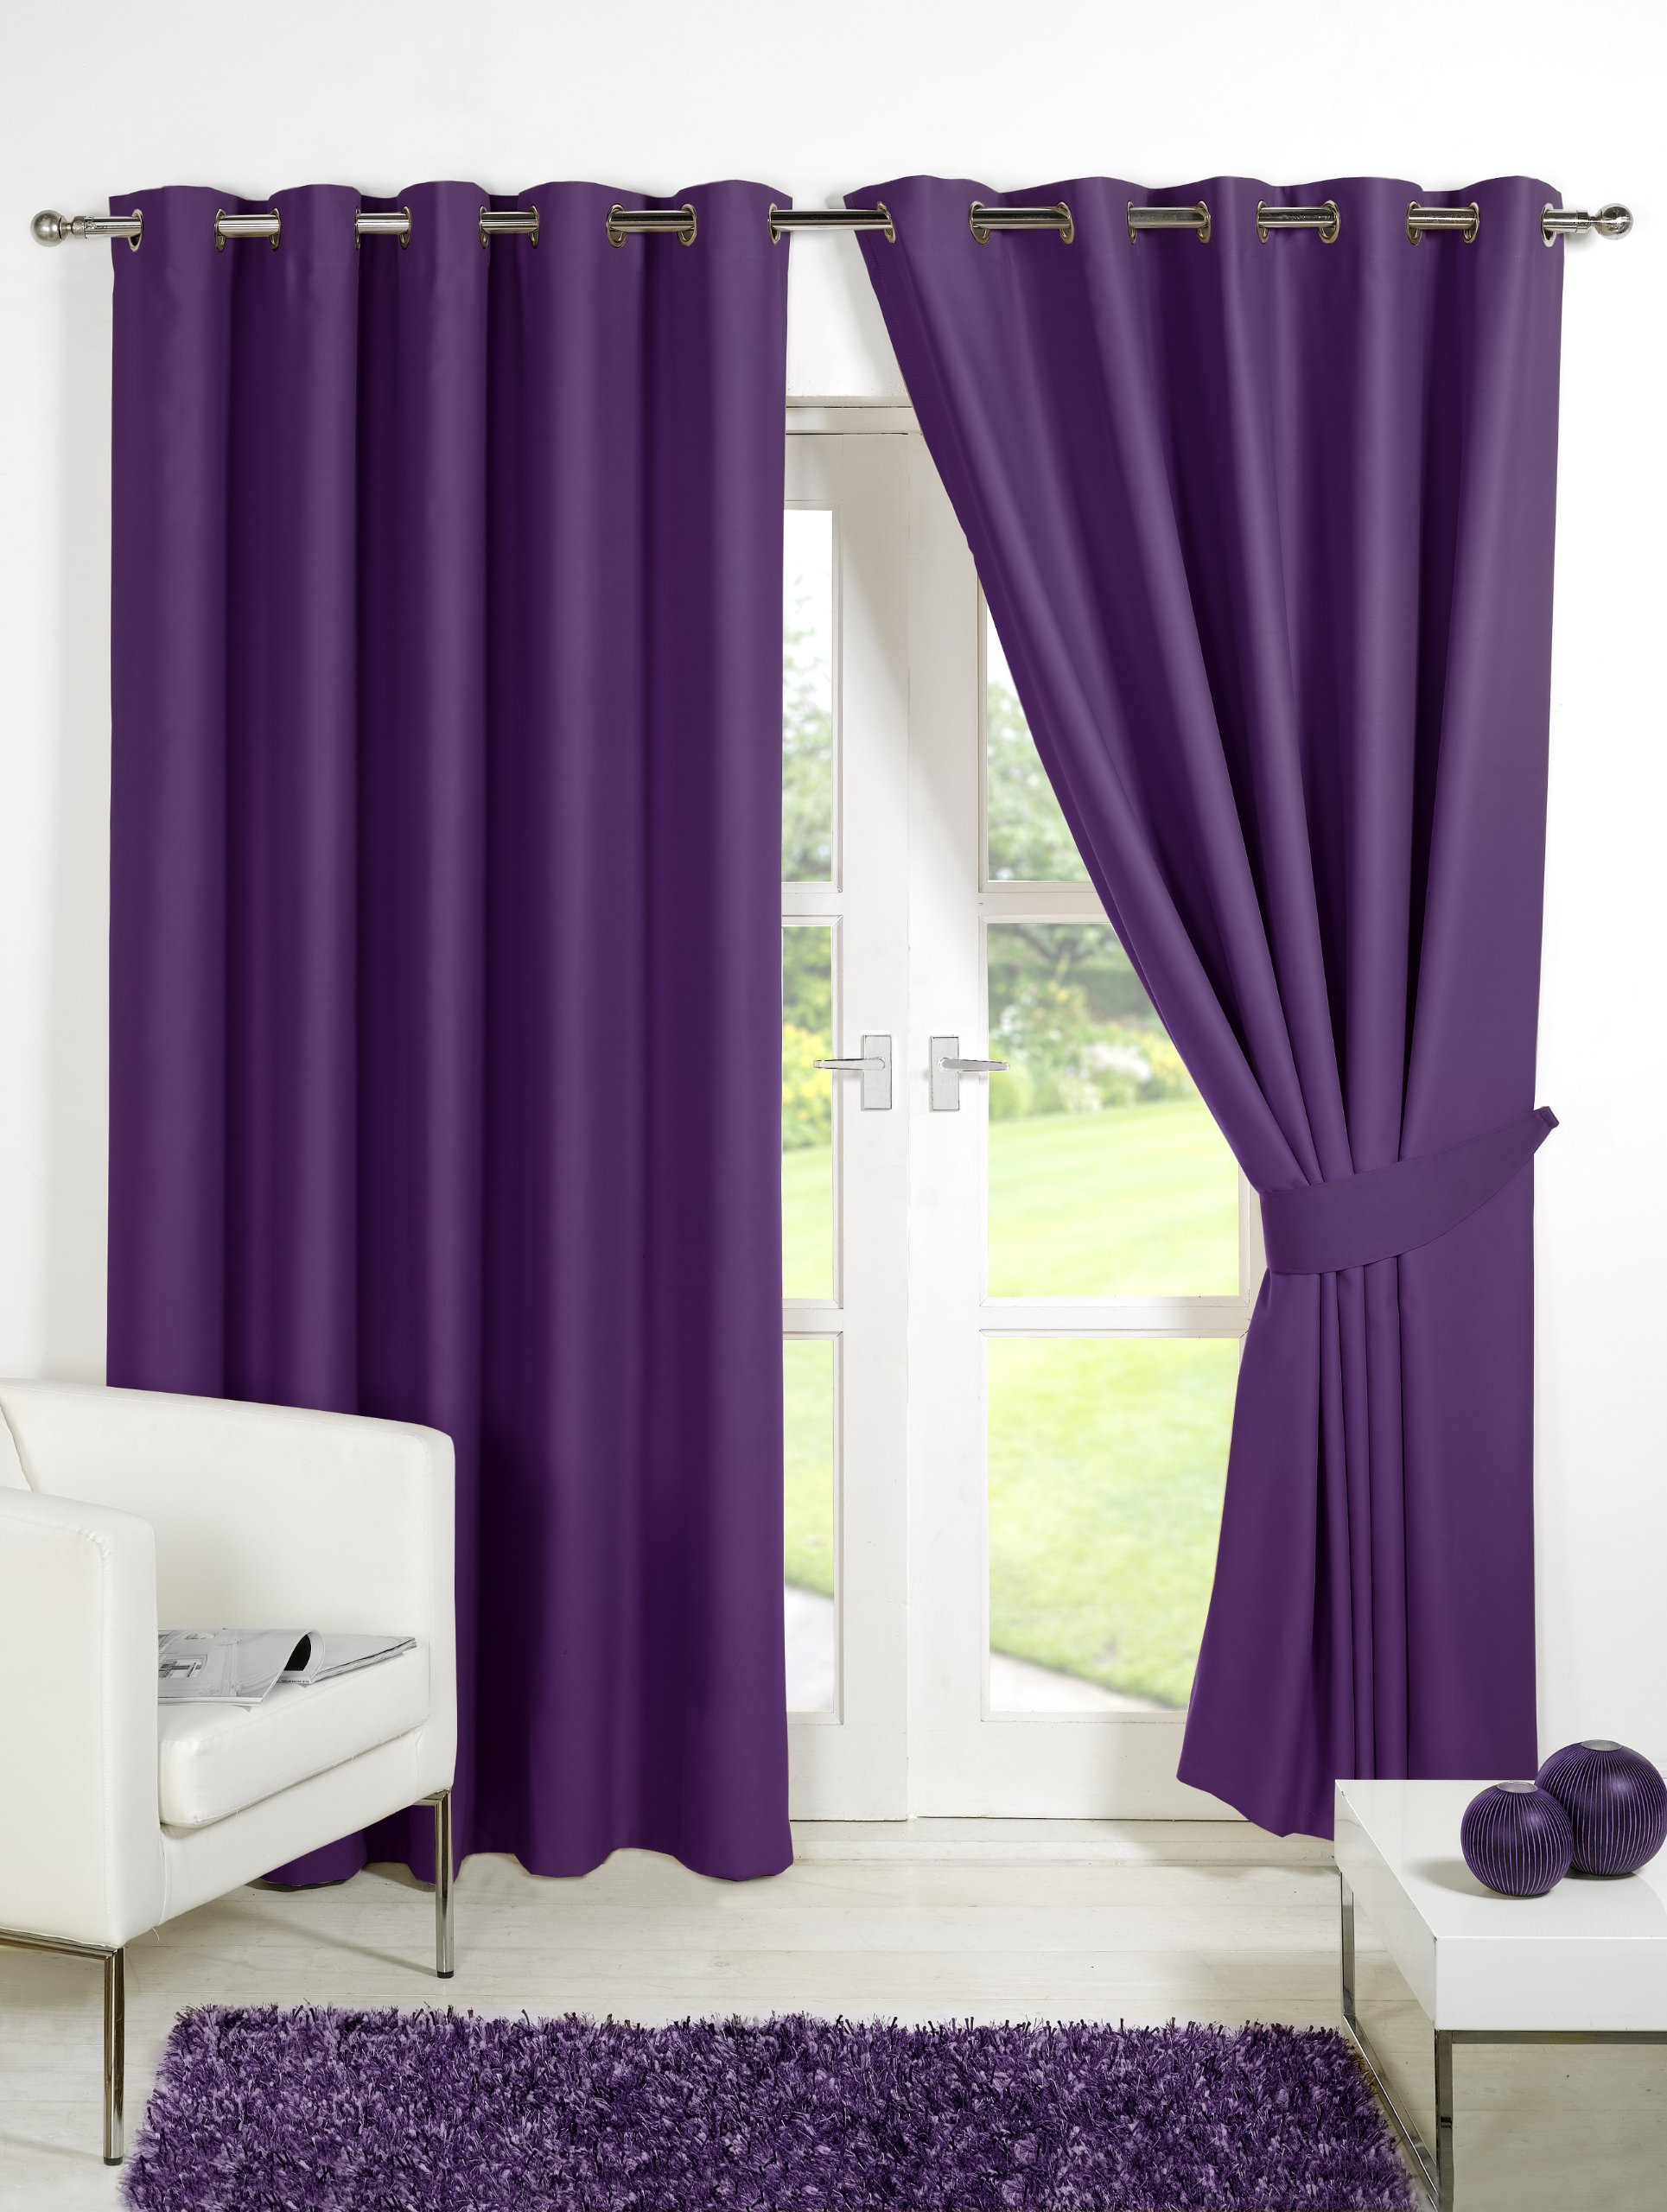 Viceroybedding Pair Of PLUM PURPLE 46 Width X 54 Drop Supersoft Thermal Blackout